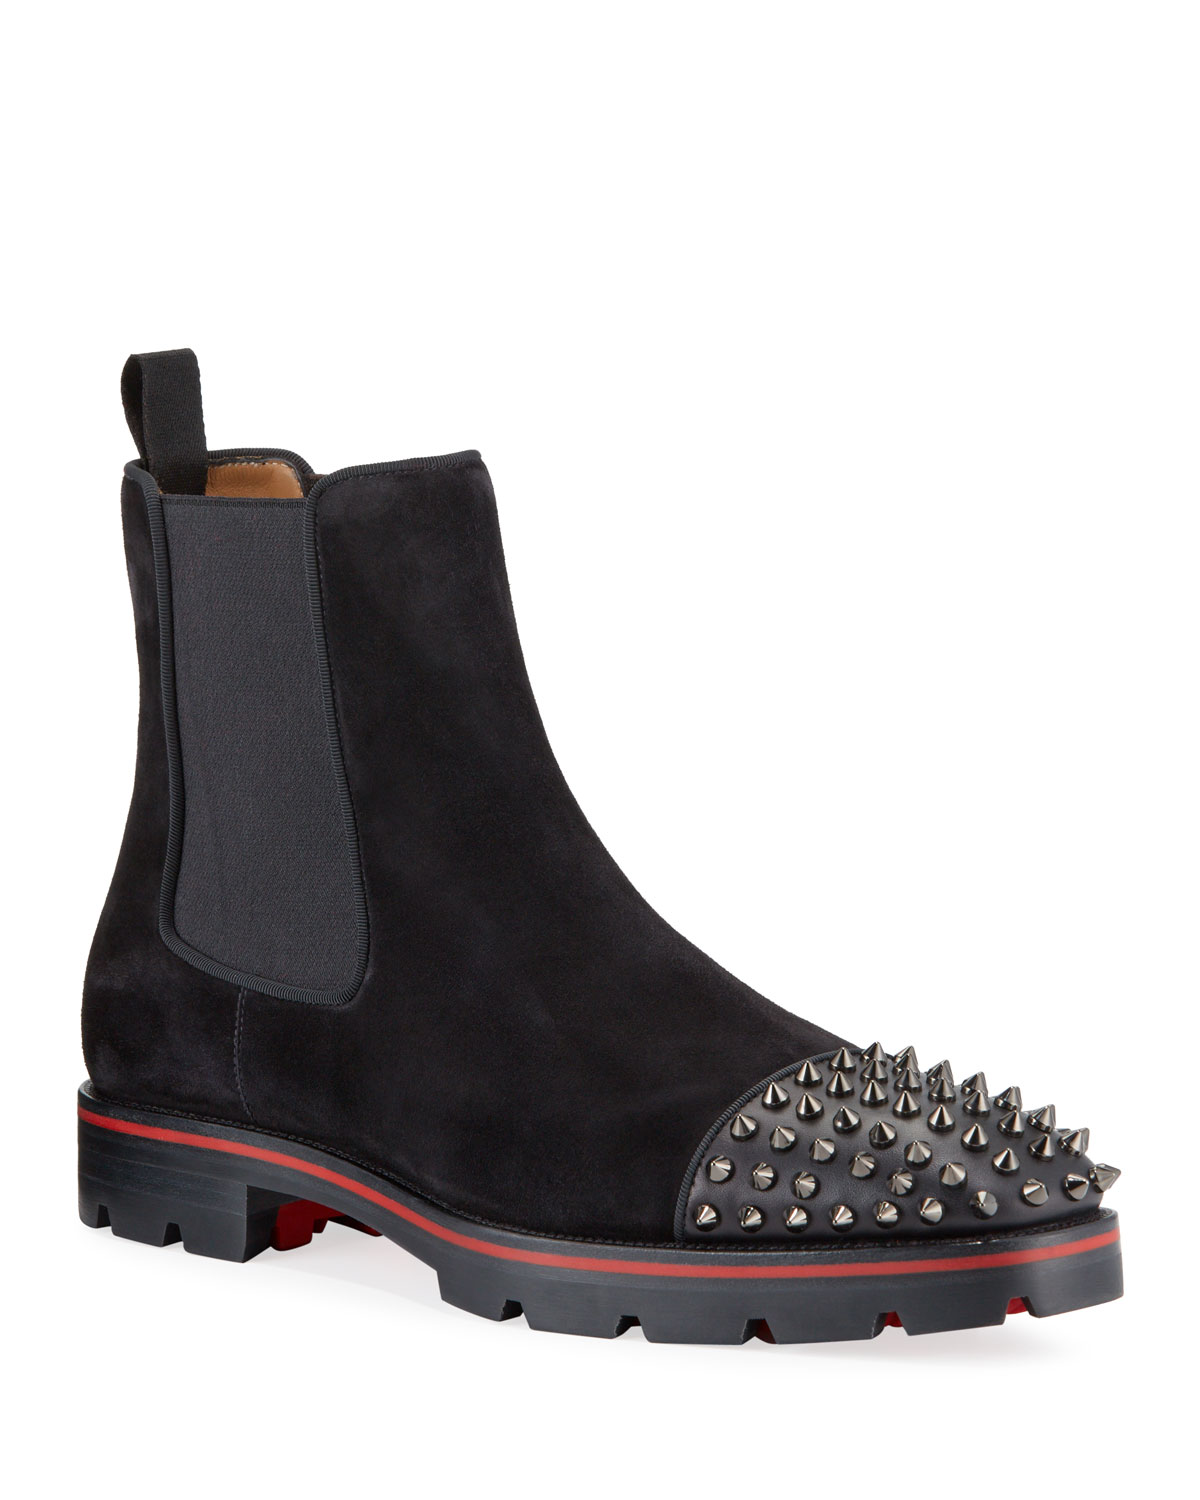 Melon Spikes Red Sole Chelsea Boots